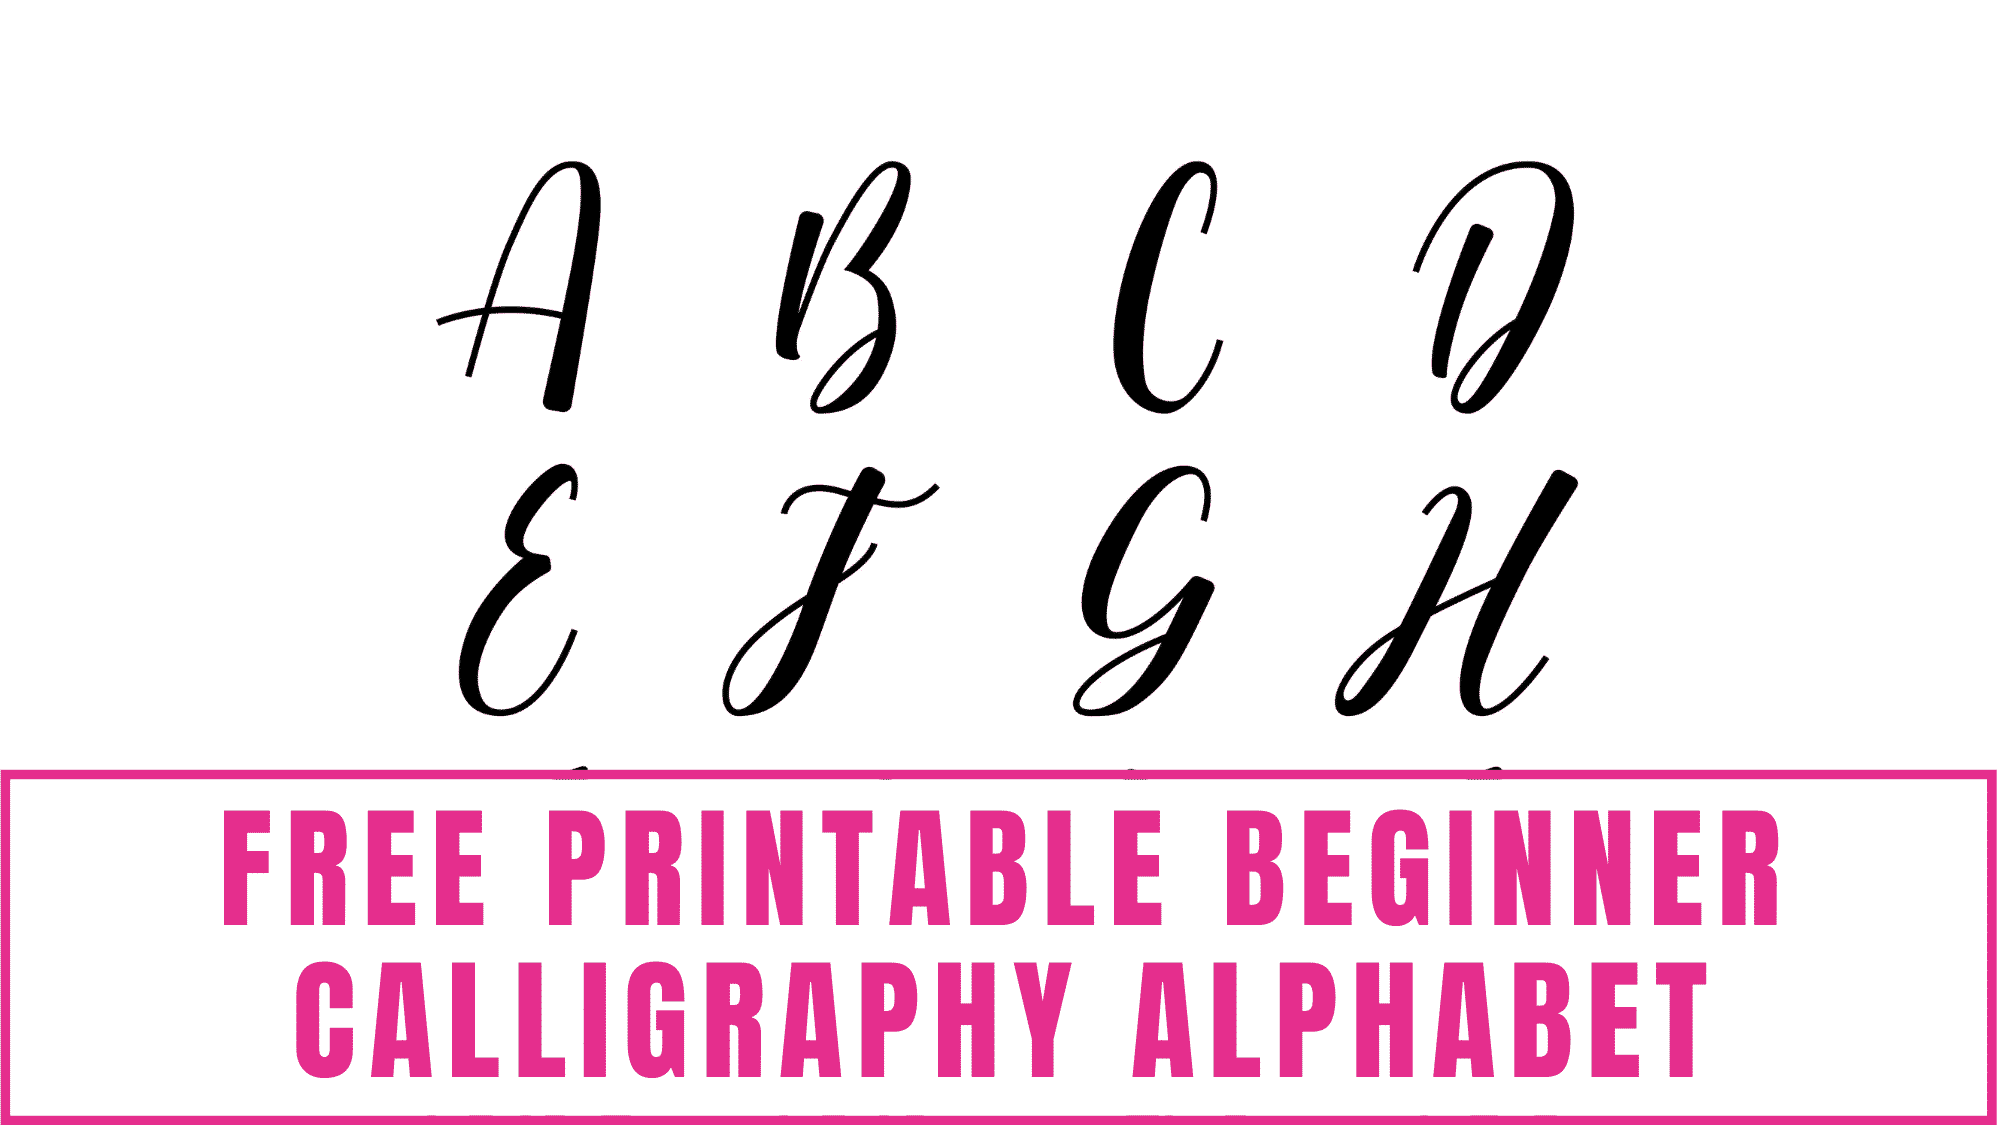 This modern free printable beginner calligraphy alphabet is a great calligraphy front to begin learning.